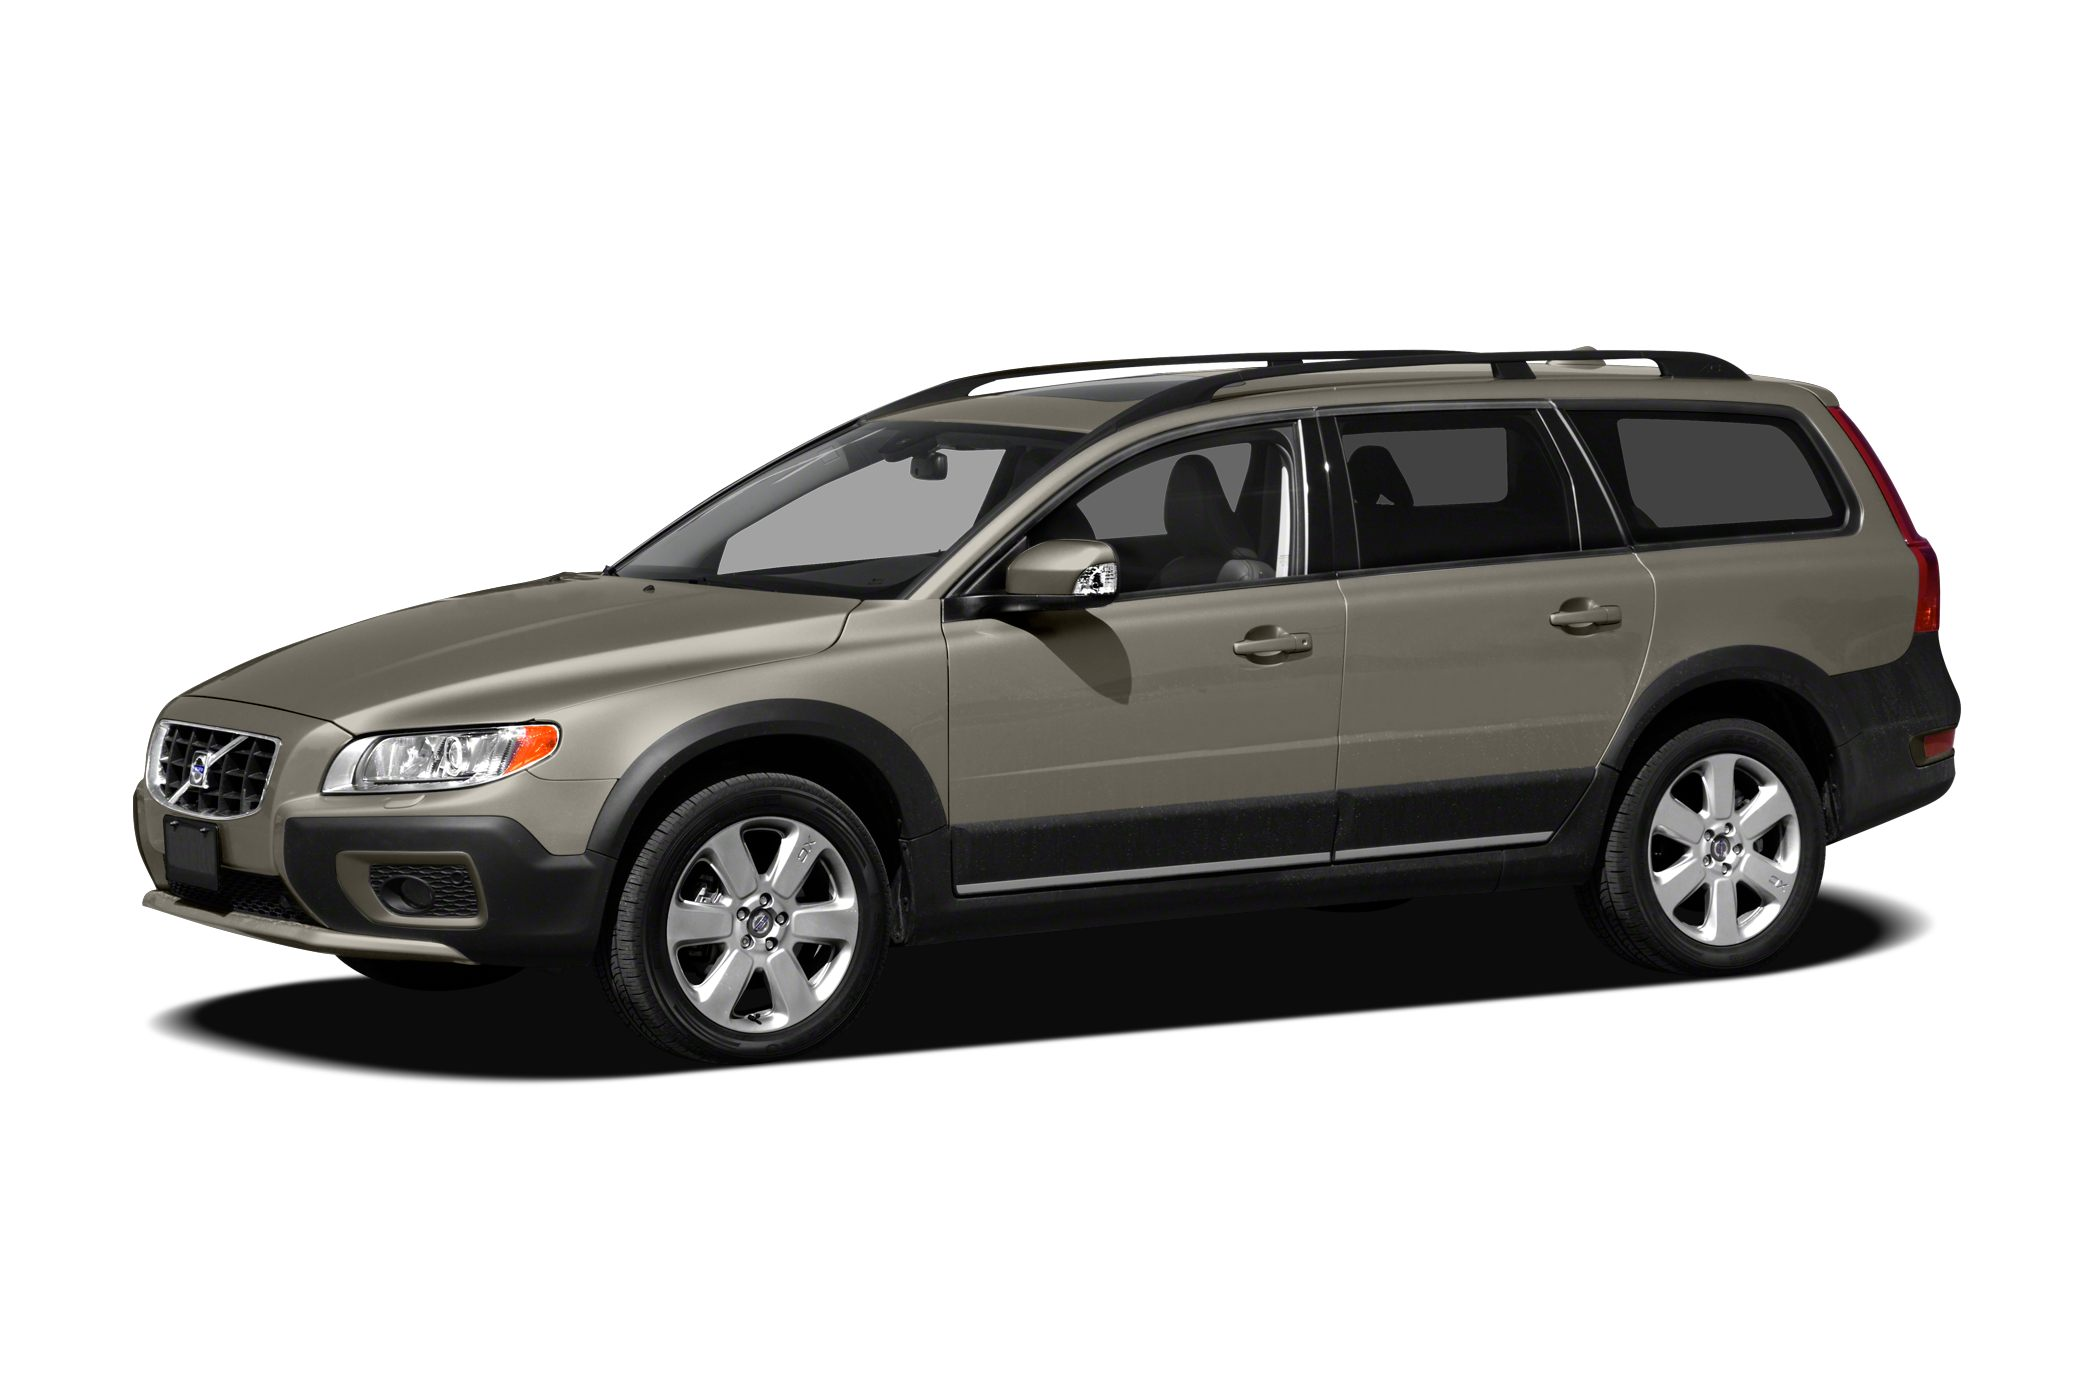 Volvo XC70 - owner reviews